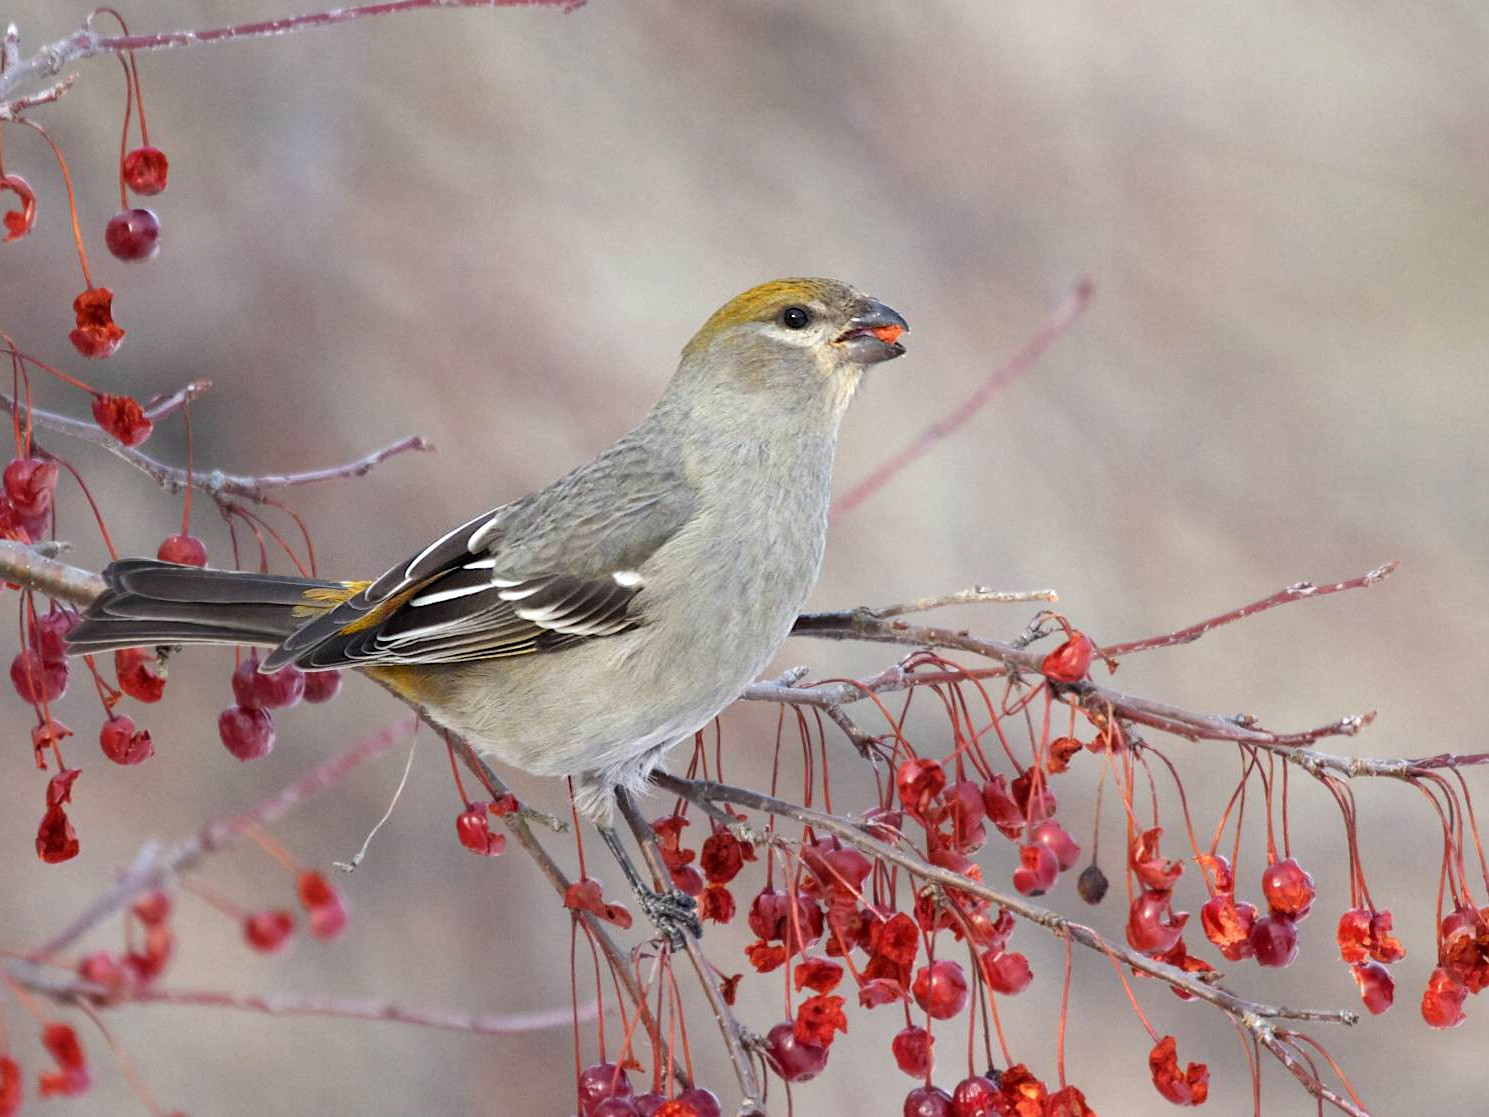 Pine Grosbeak - Doug Hitchcox